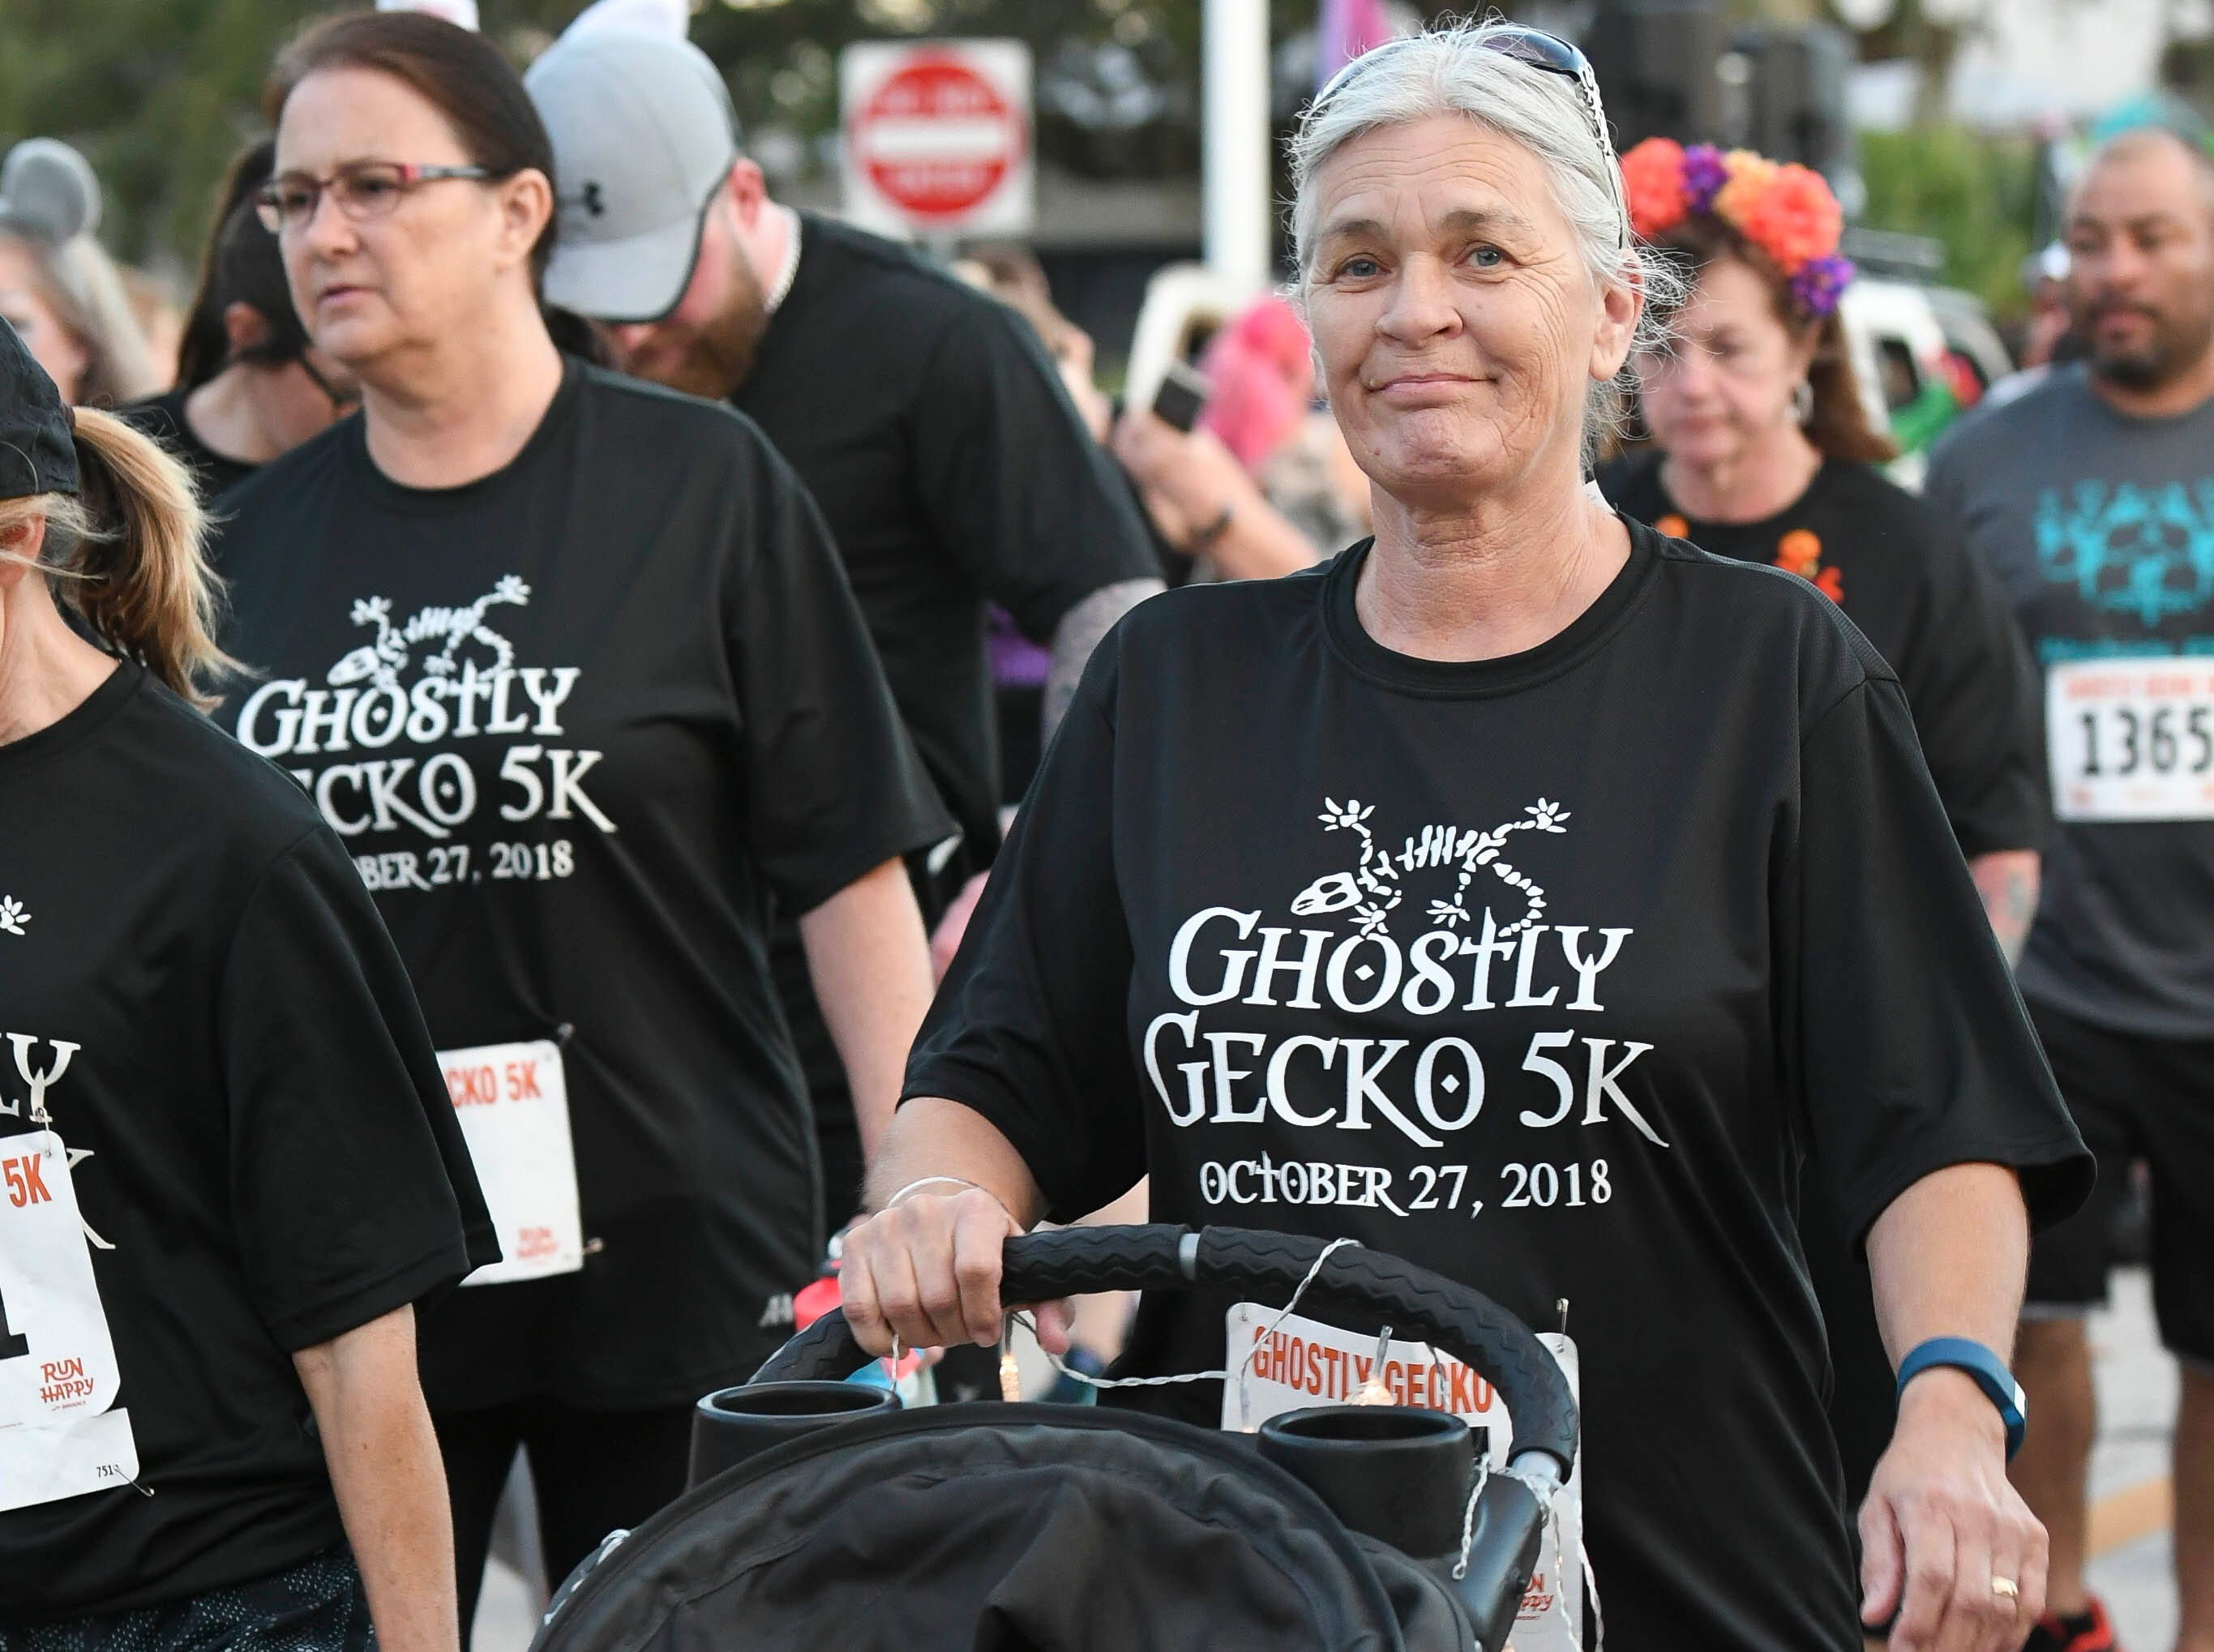 Participants in the Ghostly Gecko 5K dressed in costume for the annual race right before Halloween.